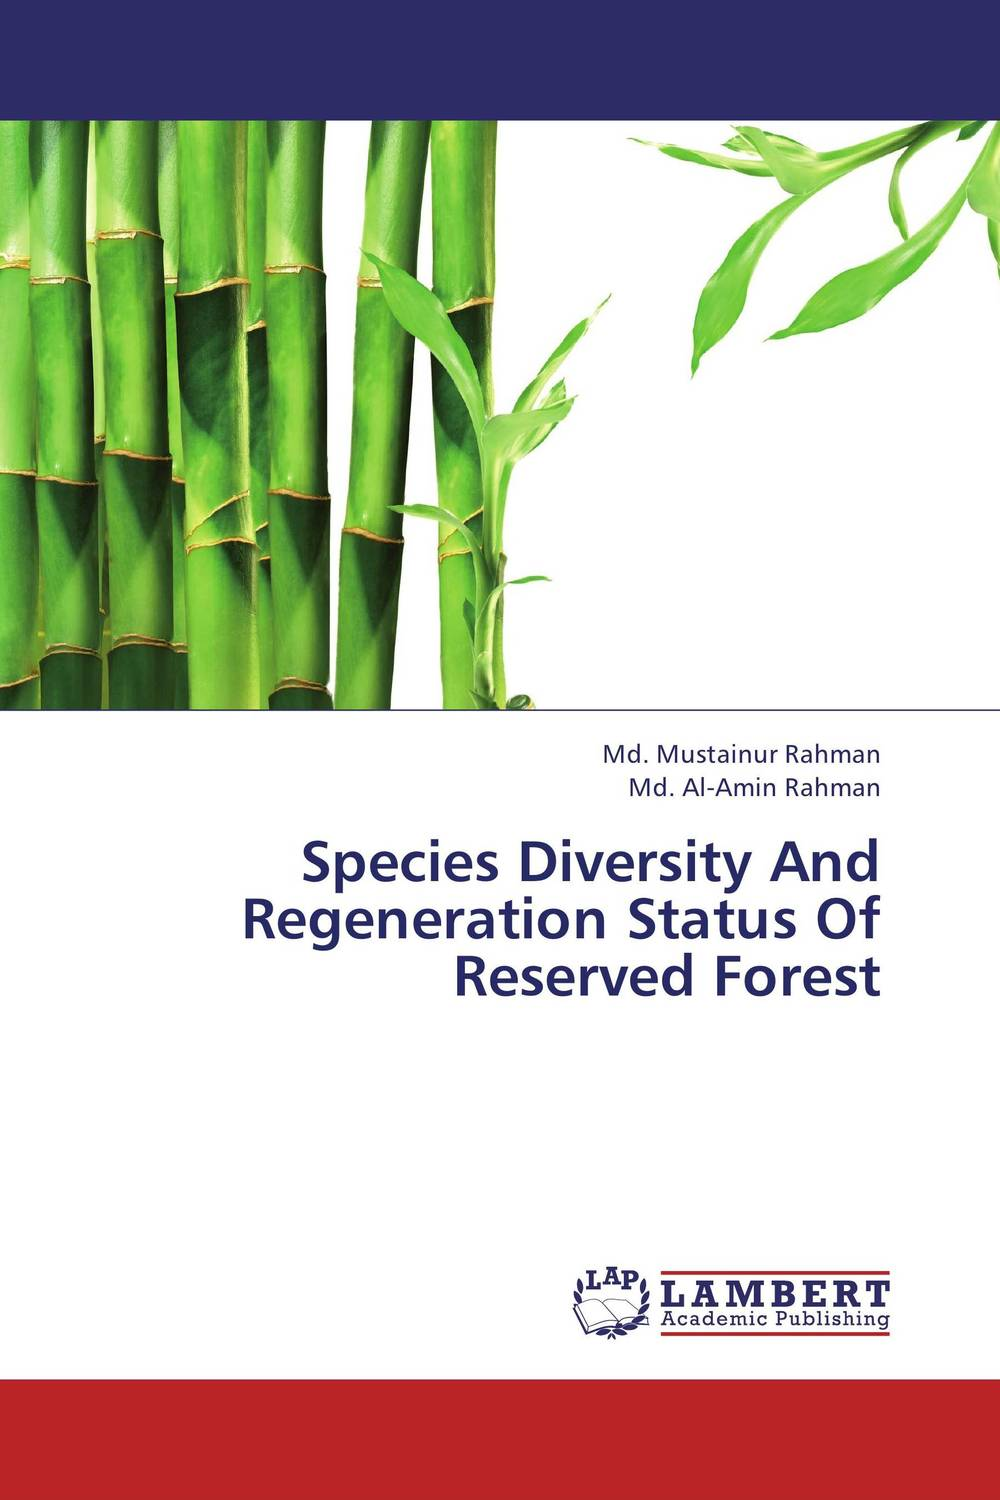 Species Diversity And Regeneration Status Of Reserved Forest mick johnson motivation is at